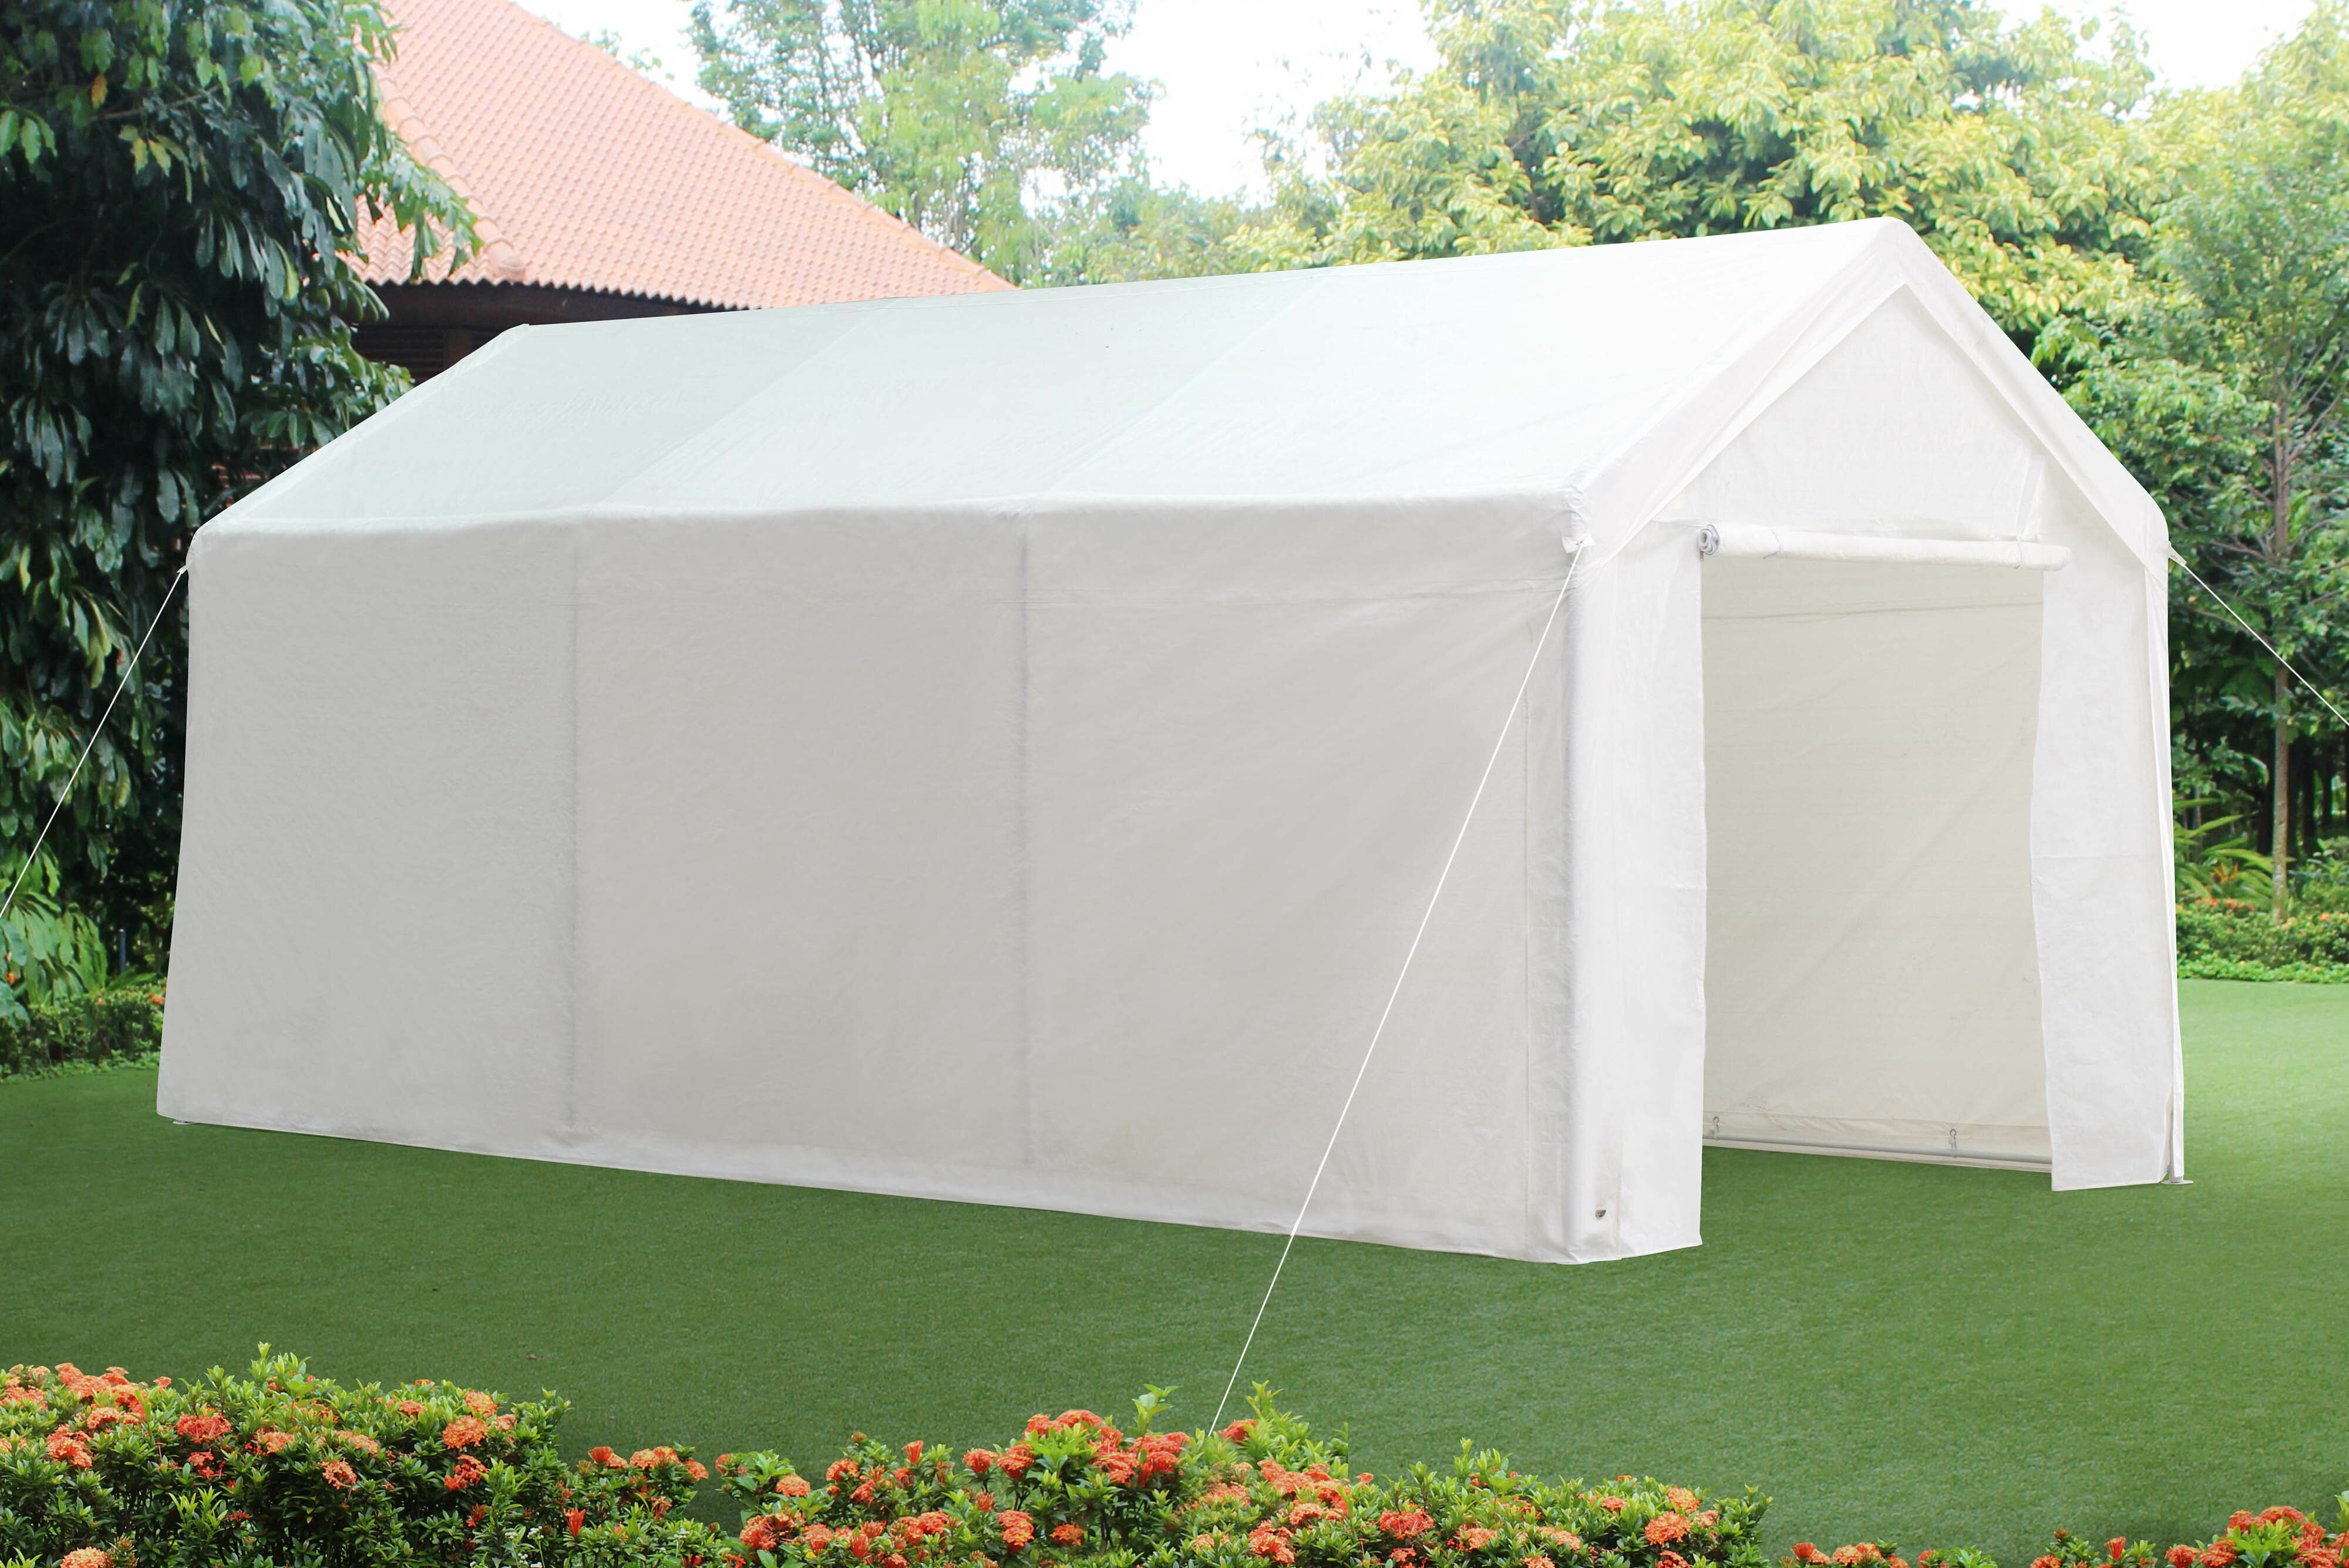 & Sunjoy 10 Ft. W x 20 Ft. D Steel Carport Party Tent Canopy | Wayfair